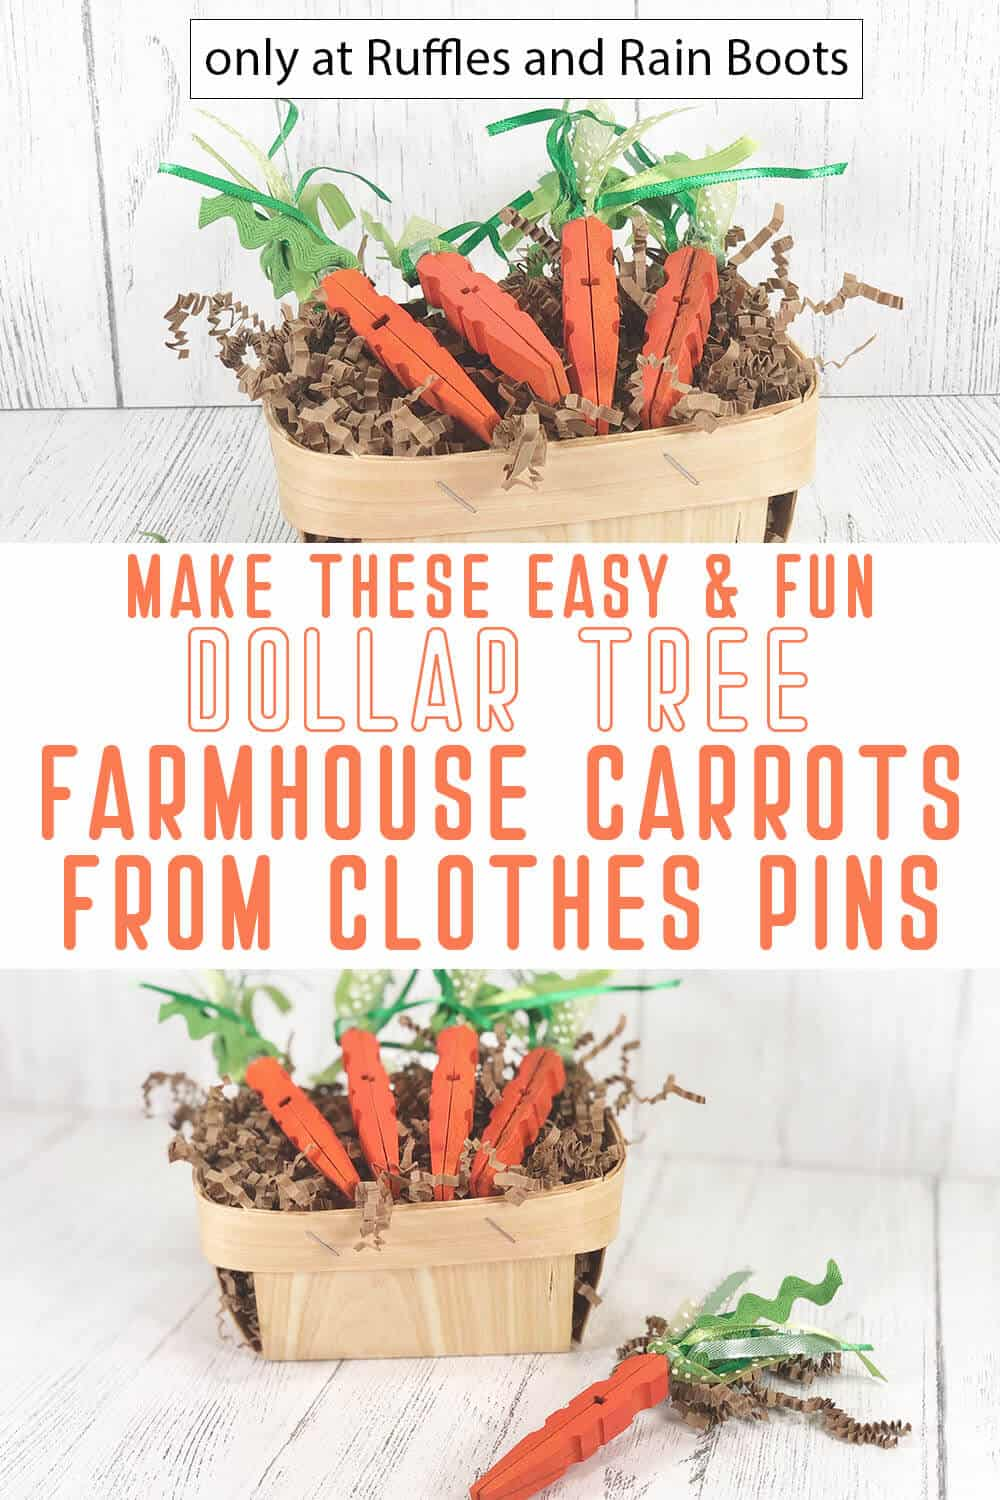 photo collage of DIY farmhouse carrots made of clothespins with text which reads make these easy & fun dollar tree farmhouse carrots from clothespins